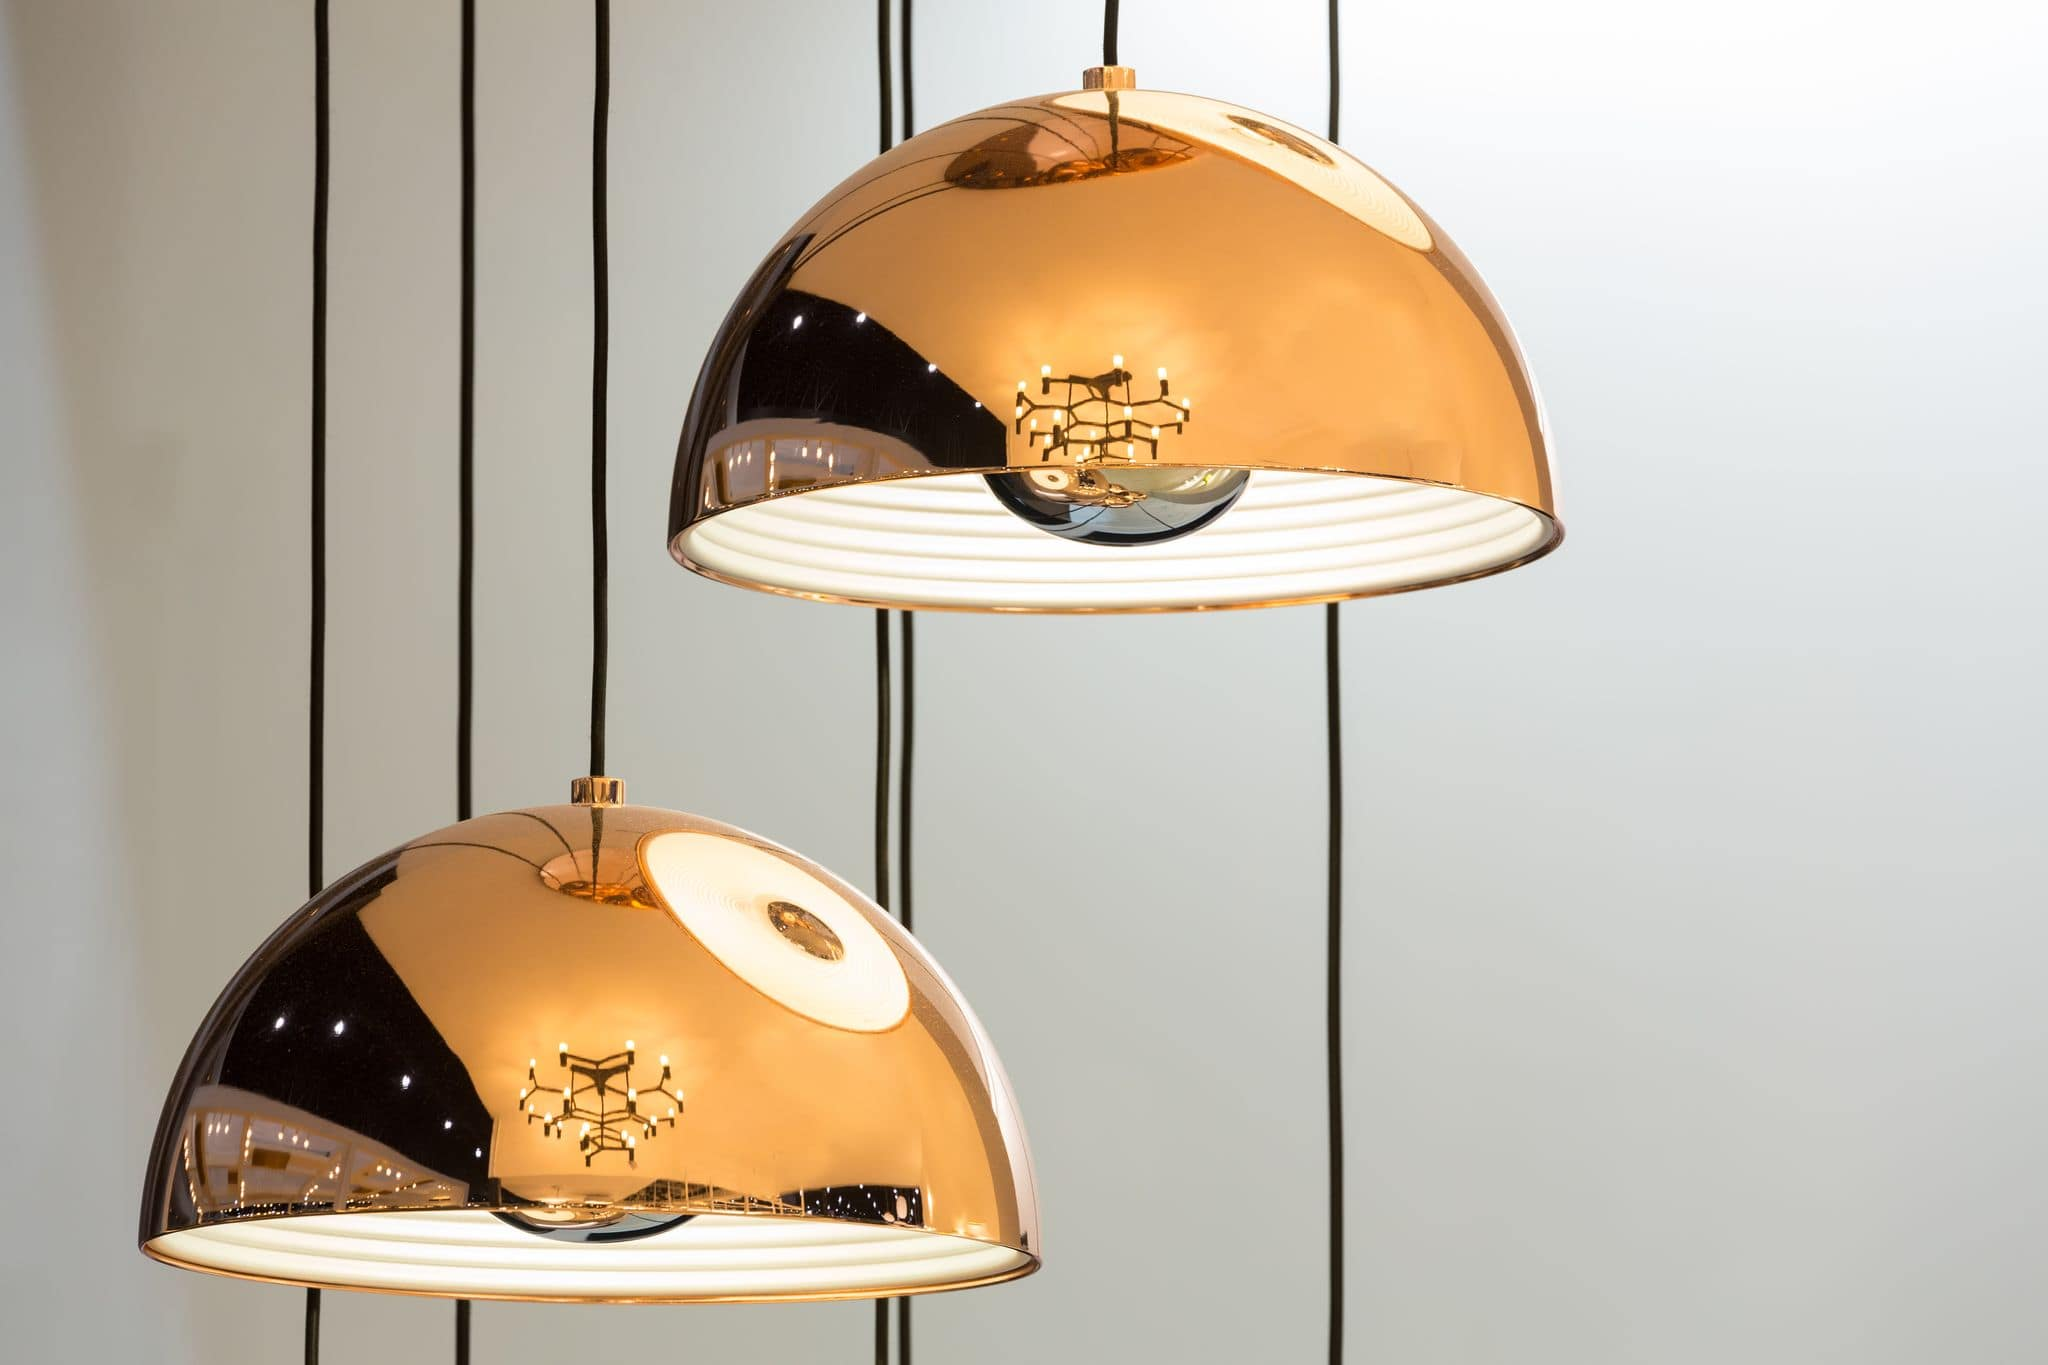 Copper lampshades to add bloom to monochromatic interior